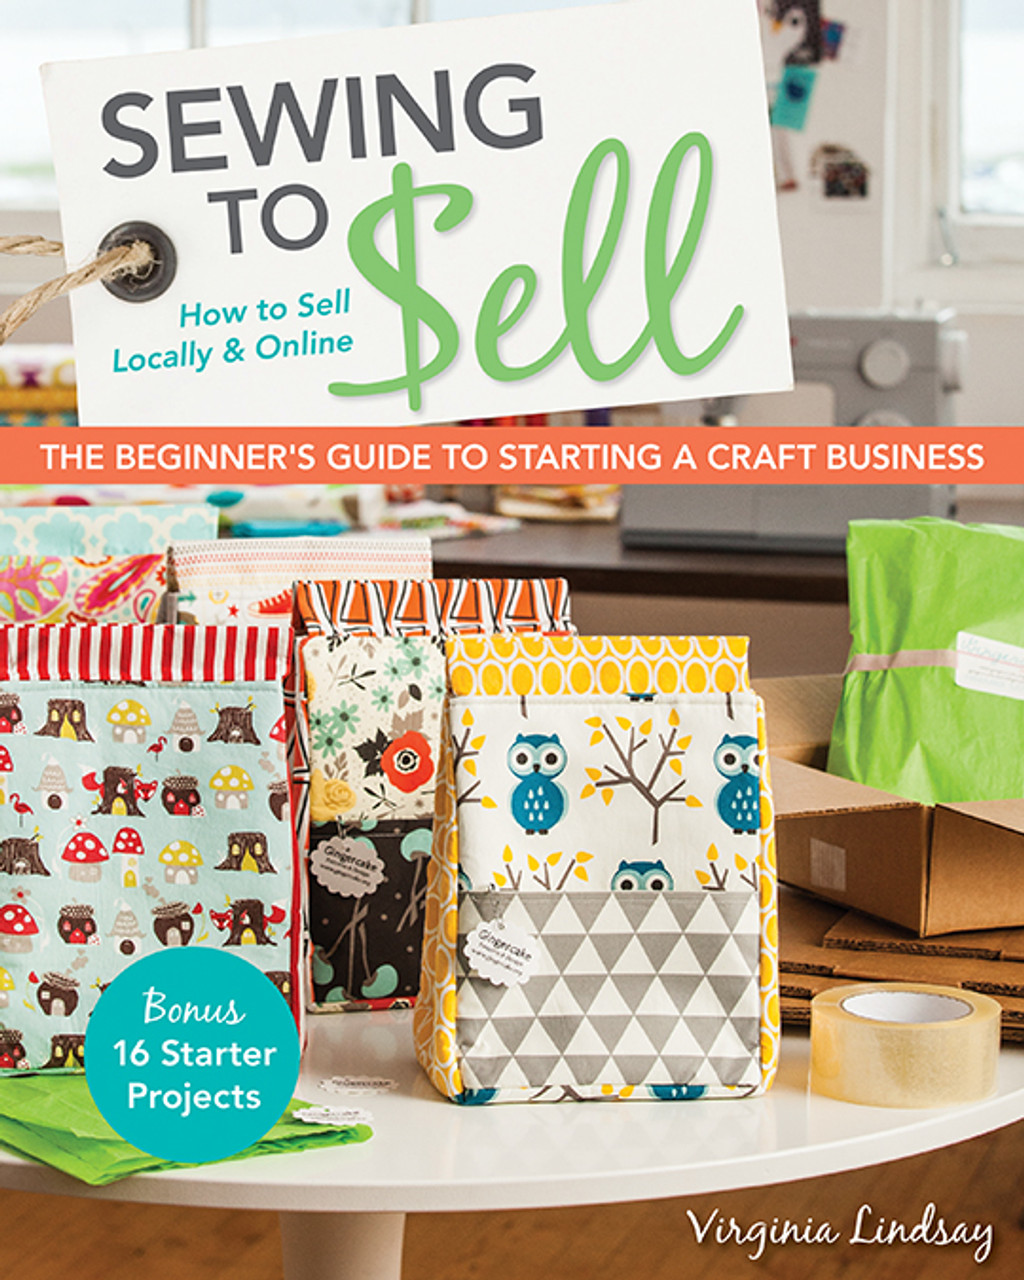 Sewing to Sell The Beginner's Guide to Starting a Craft Business